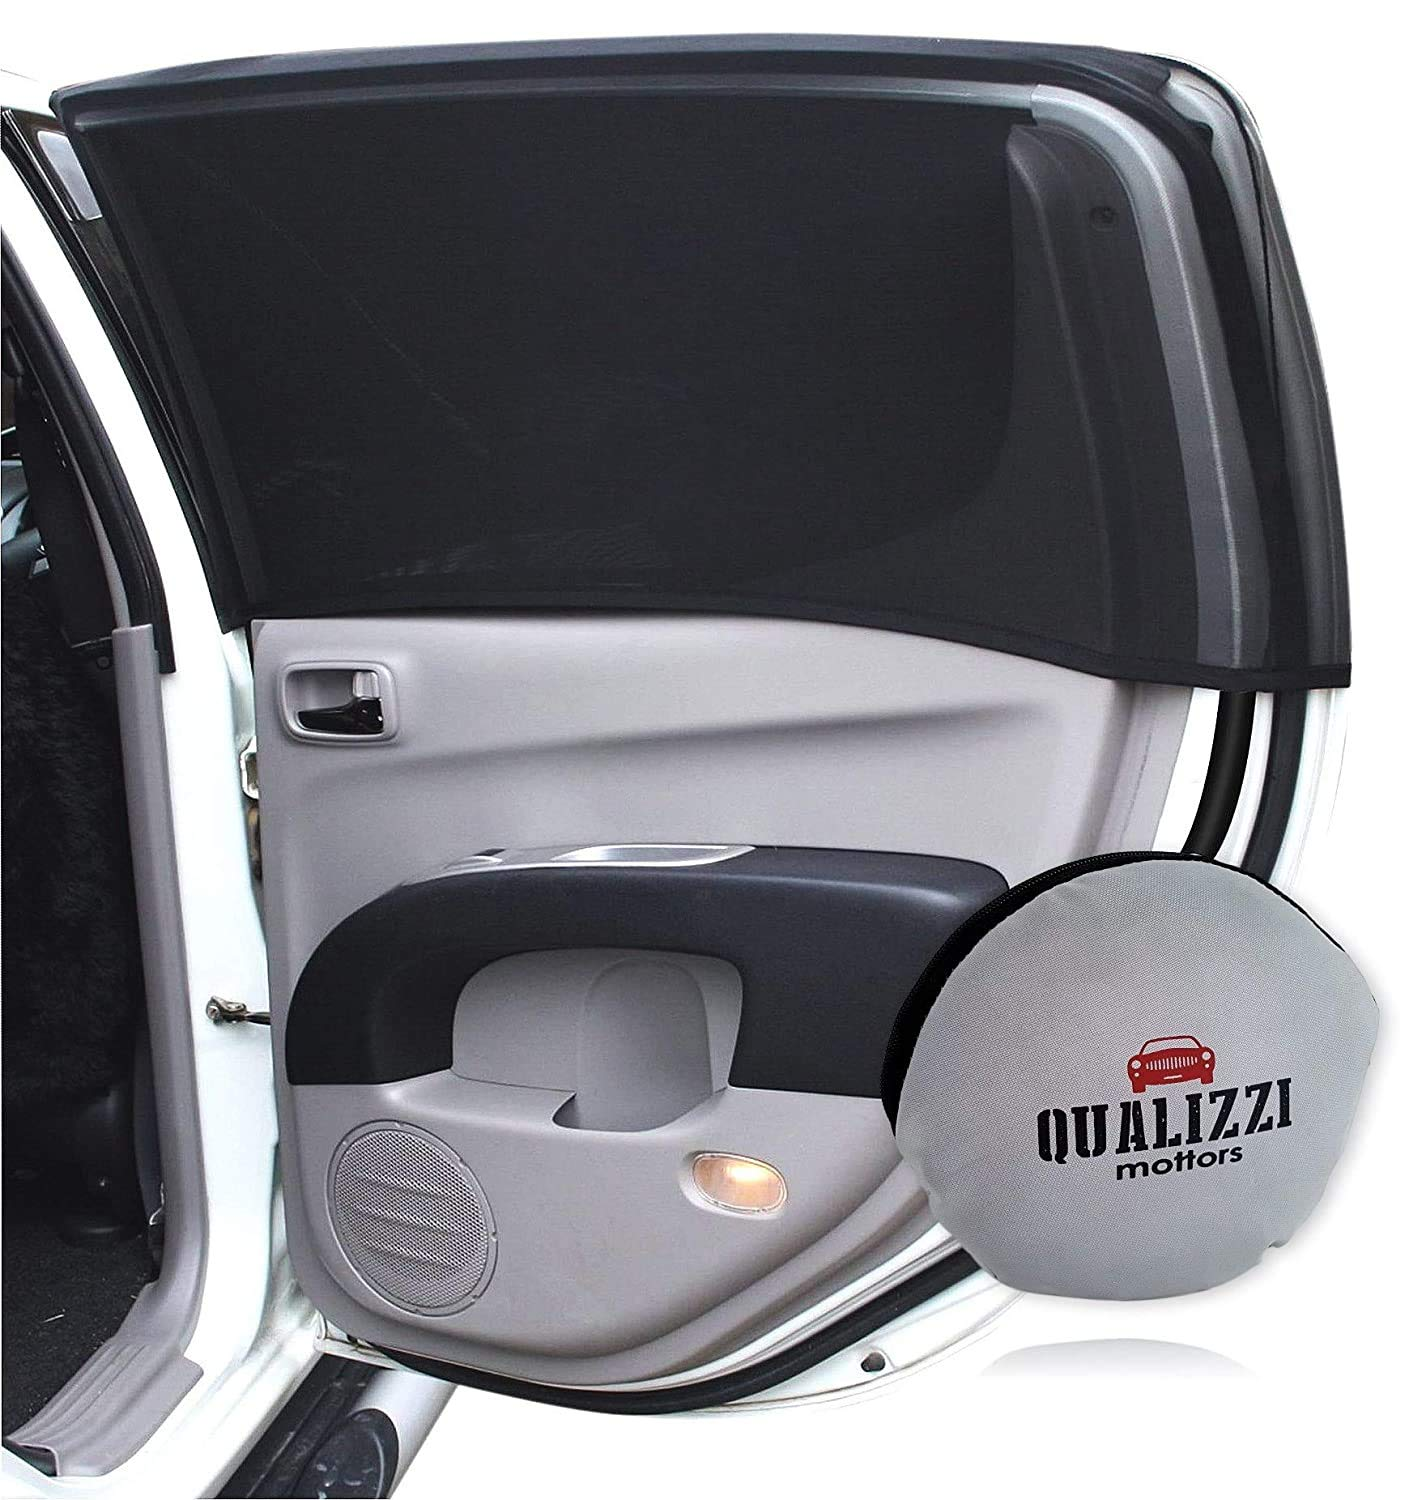 XXL-Size/Car Window Sun Shades for SUVs up to 46-51